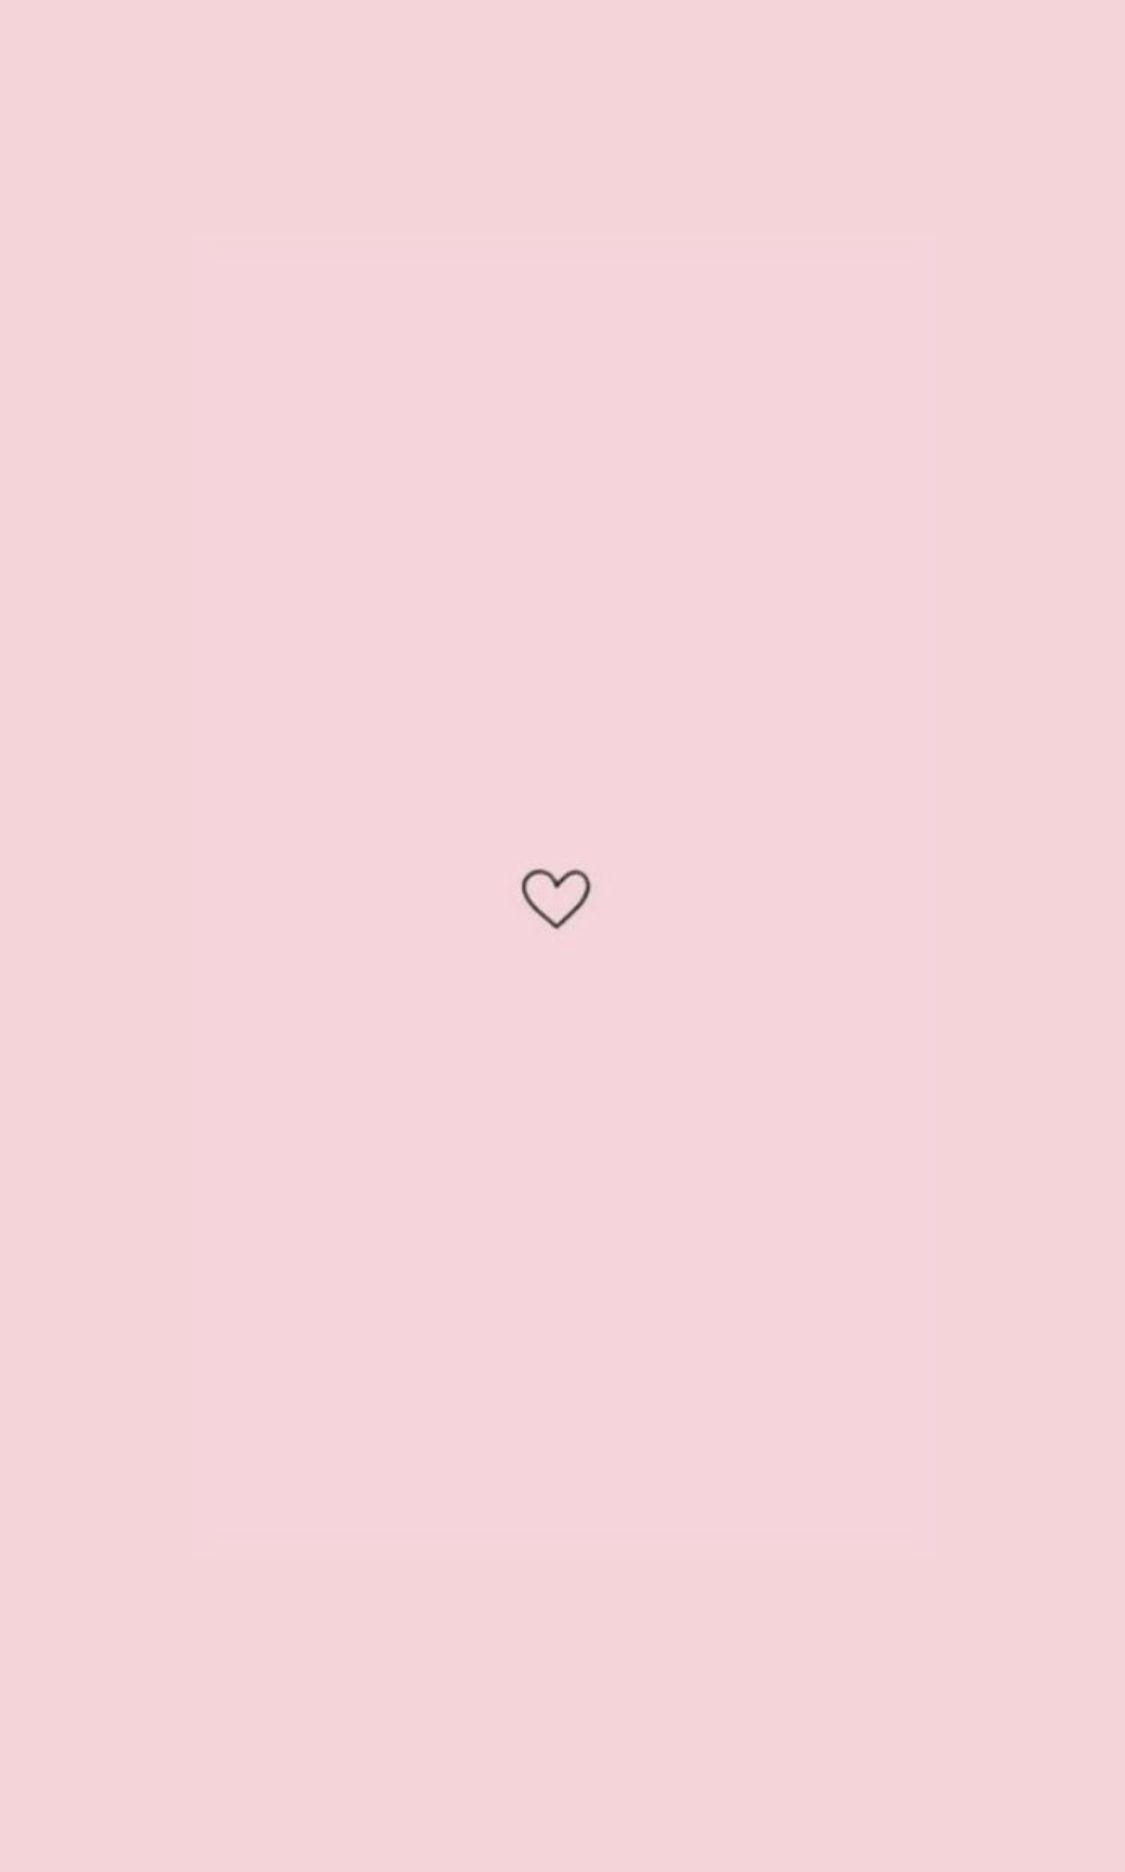 Soft Pink Aesthetic Wallpapers Wallpaper Cave